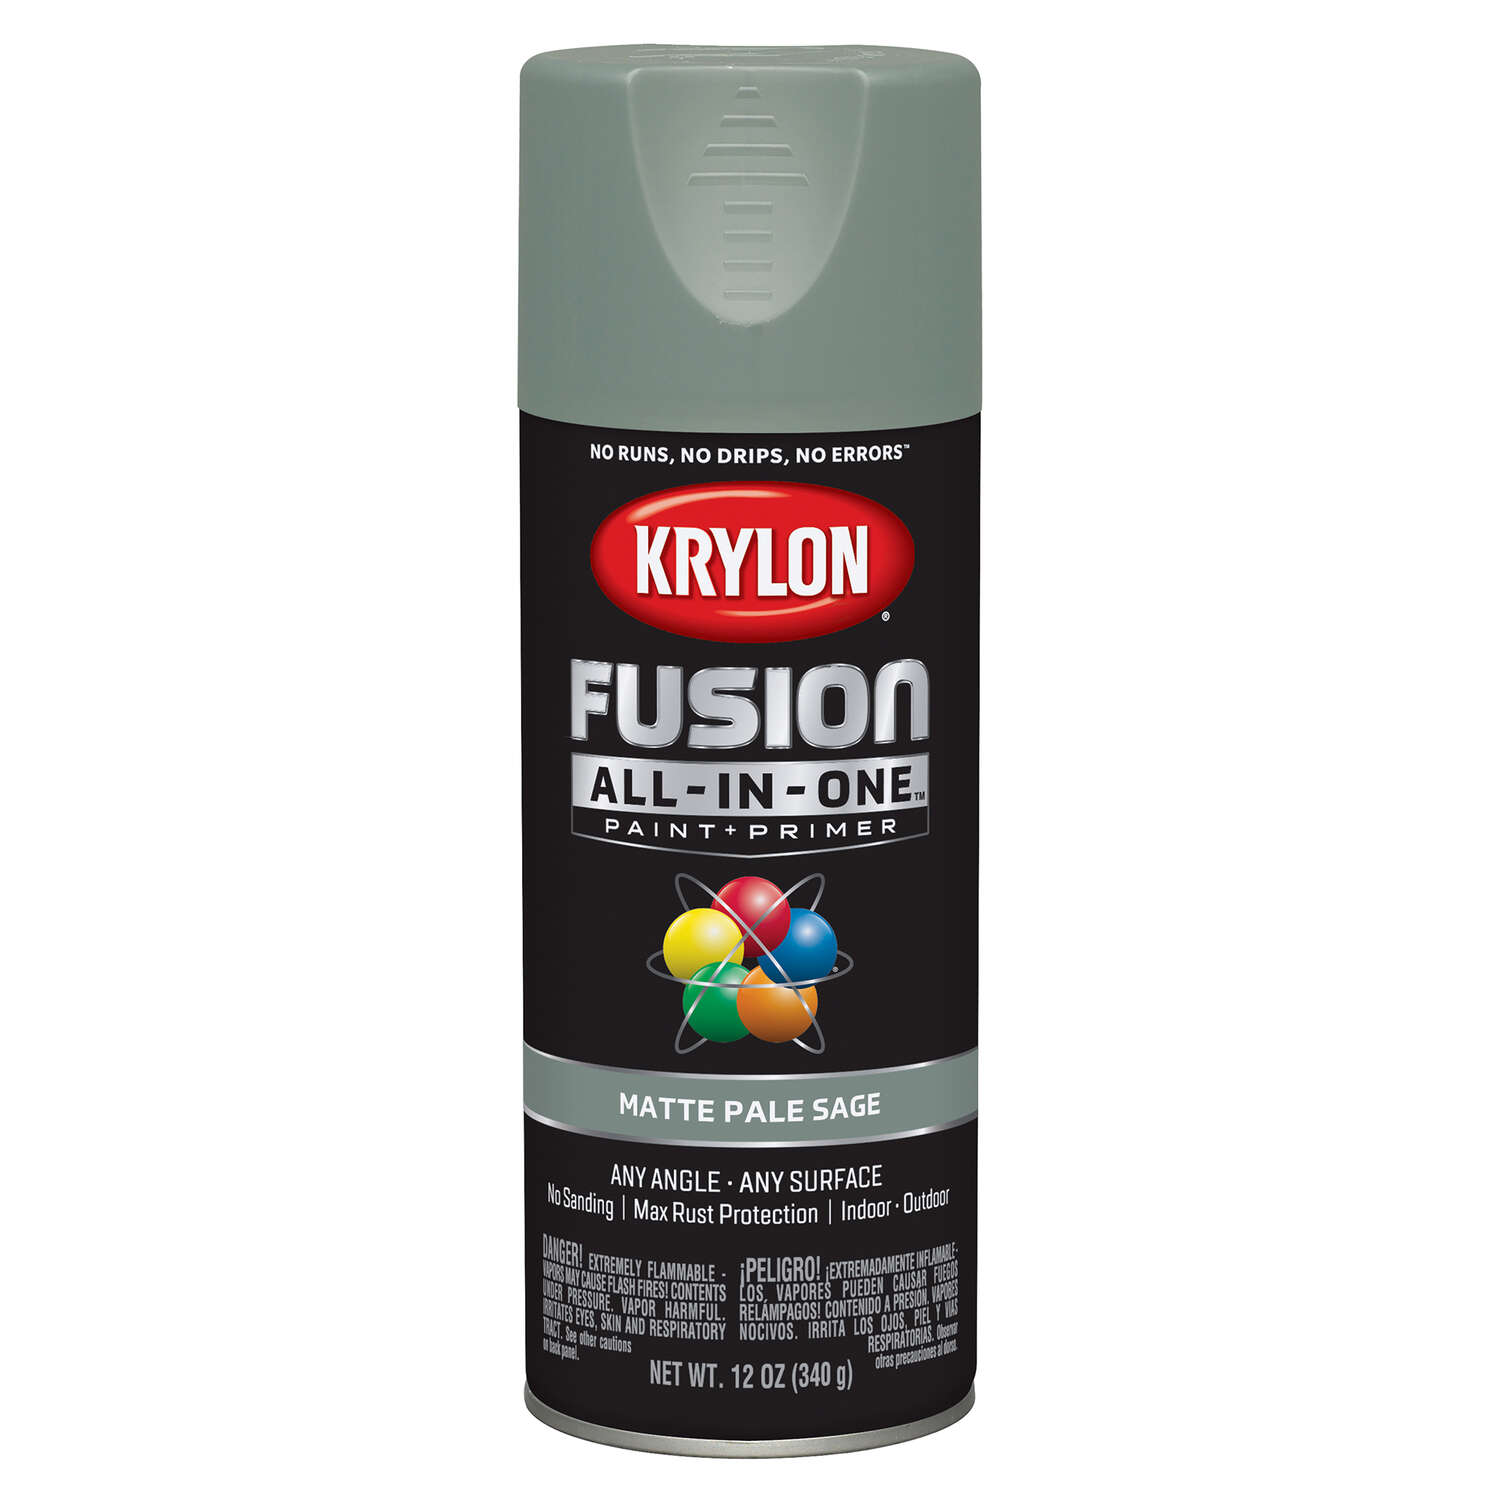 Krylon  Fusion All-In-One  Matte  Pale Sage  Paint + Primer Spray Paint  12 oz.